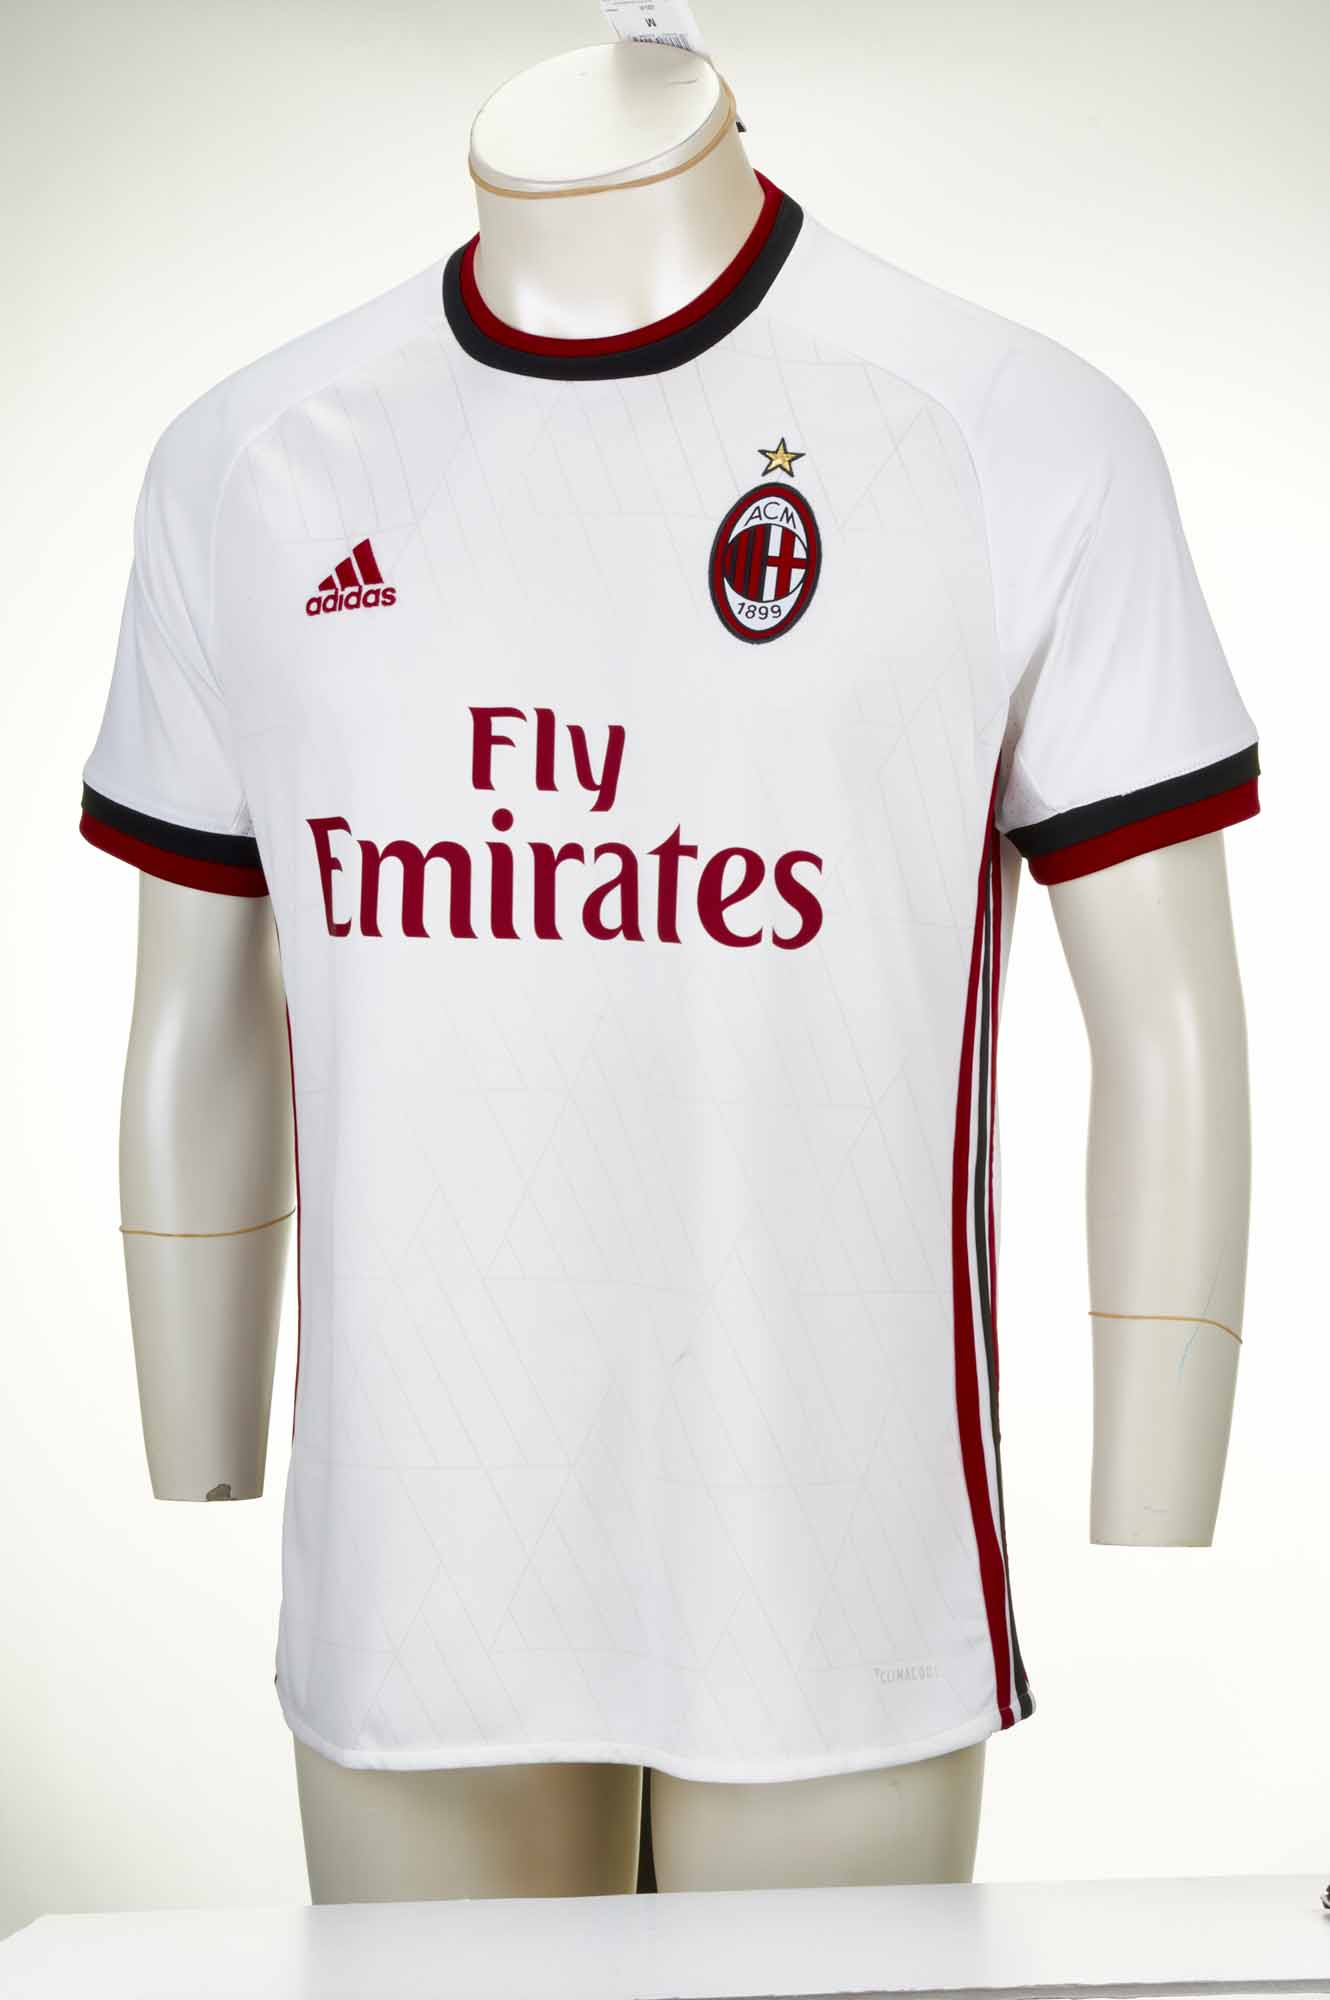 check out 7a2f5 31783 2017/18 adidas AC Milan Away Jersey - Soccer Master